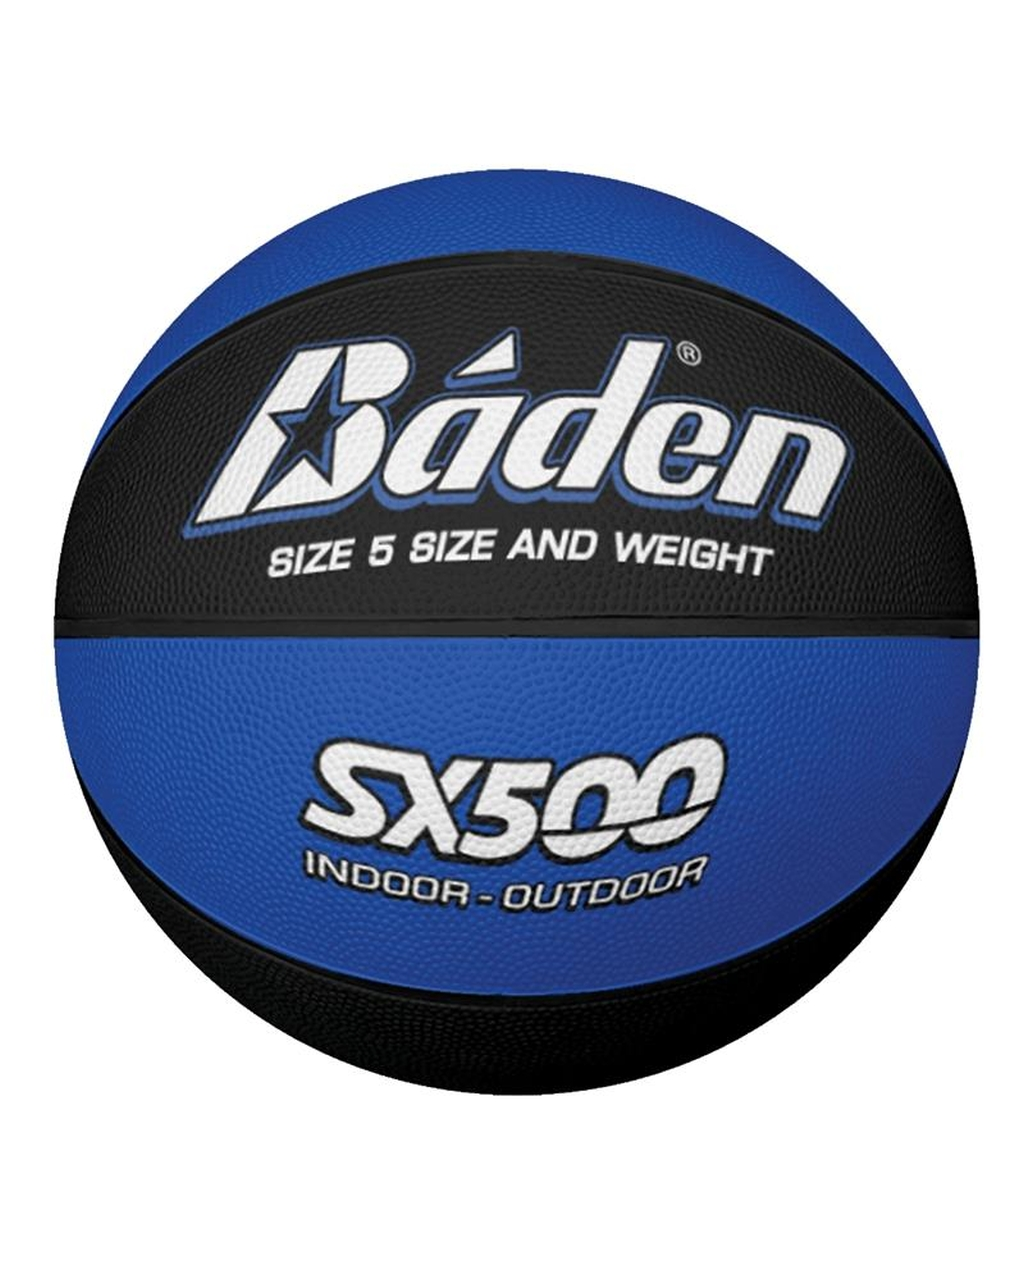 Baden SX Series Basketball Size 3